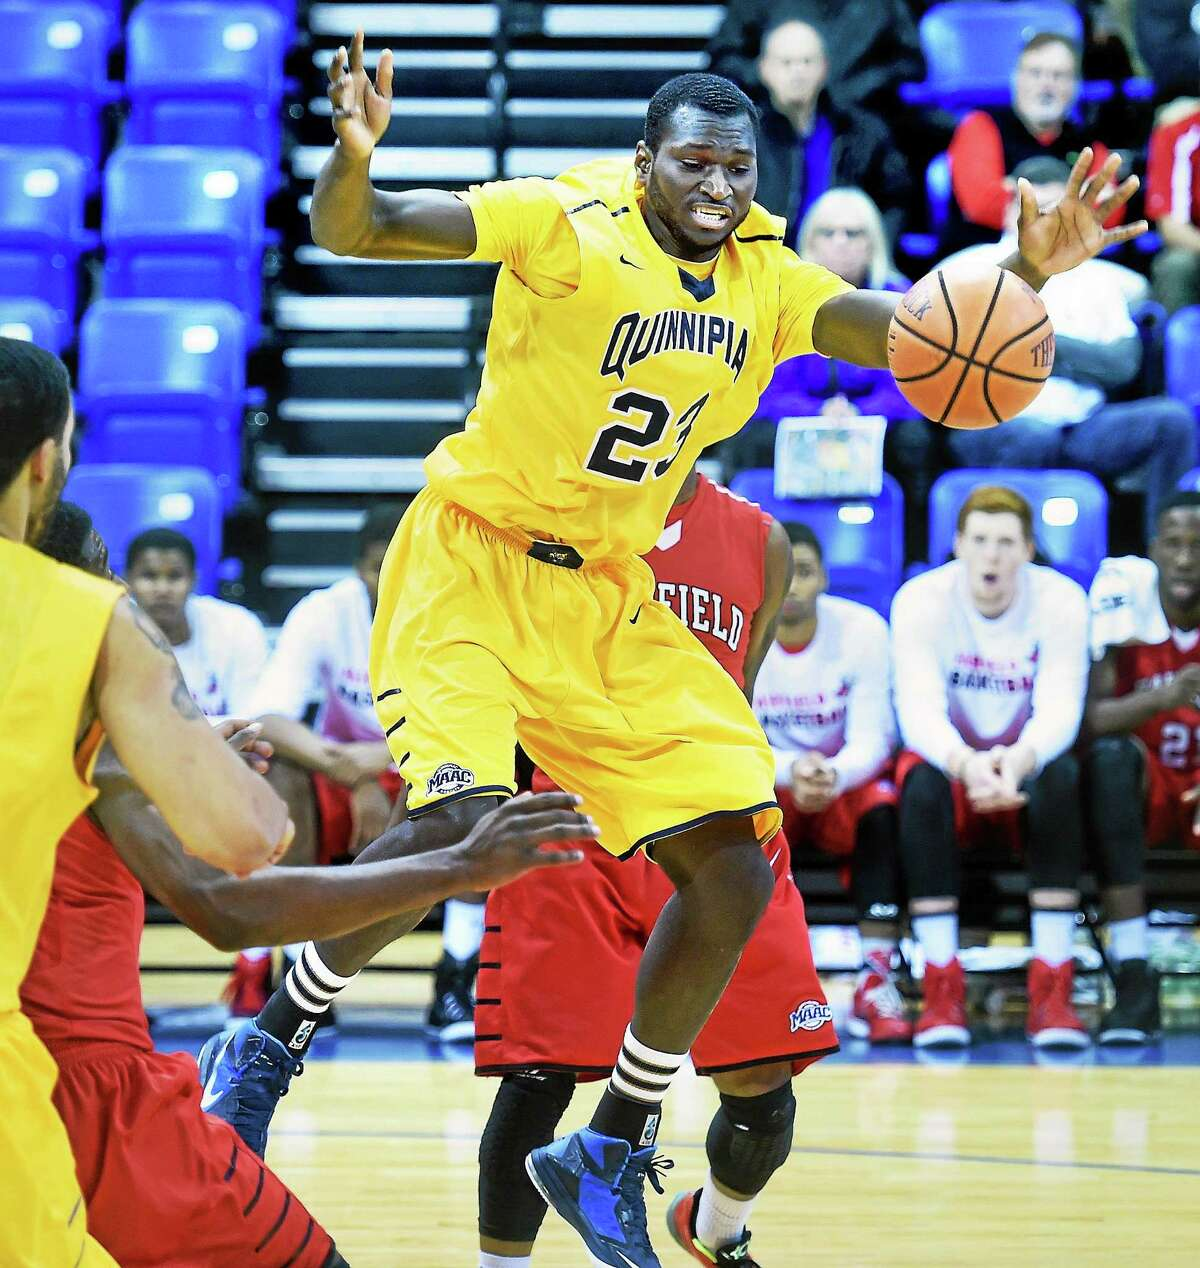 (Arnold Gold-New Haven Register) Ousmane Drame of Quinnipiac University loses the ball in the first half against Fairfield University on 12/7/2014.